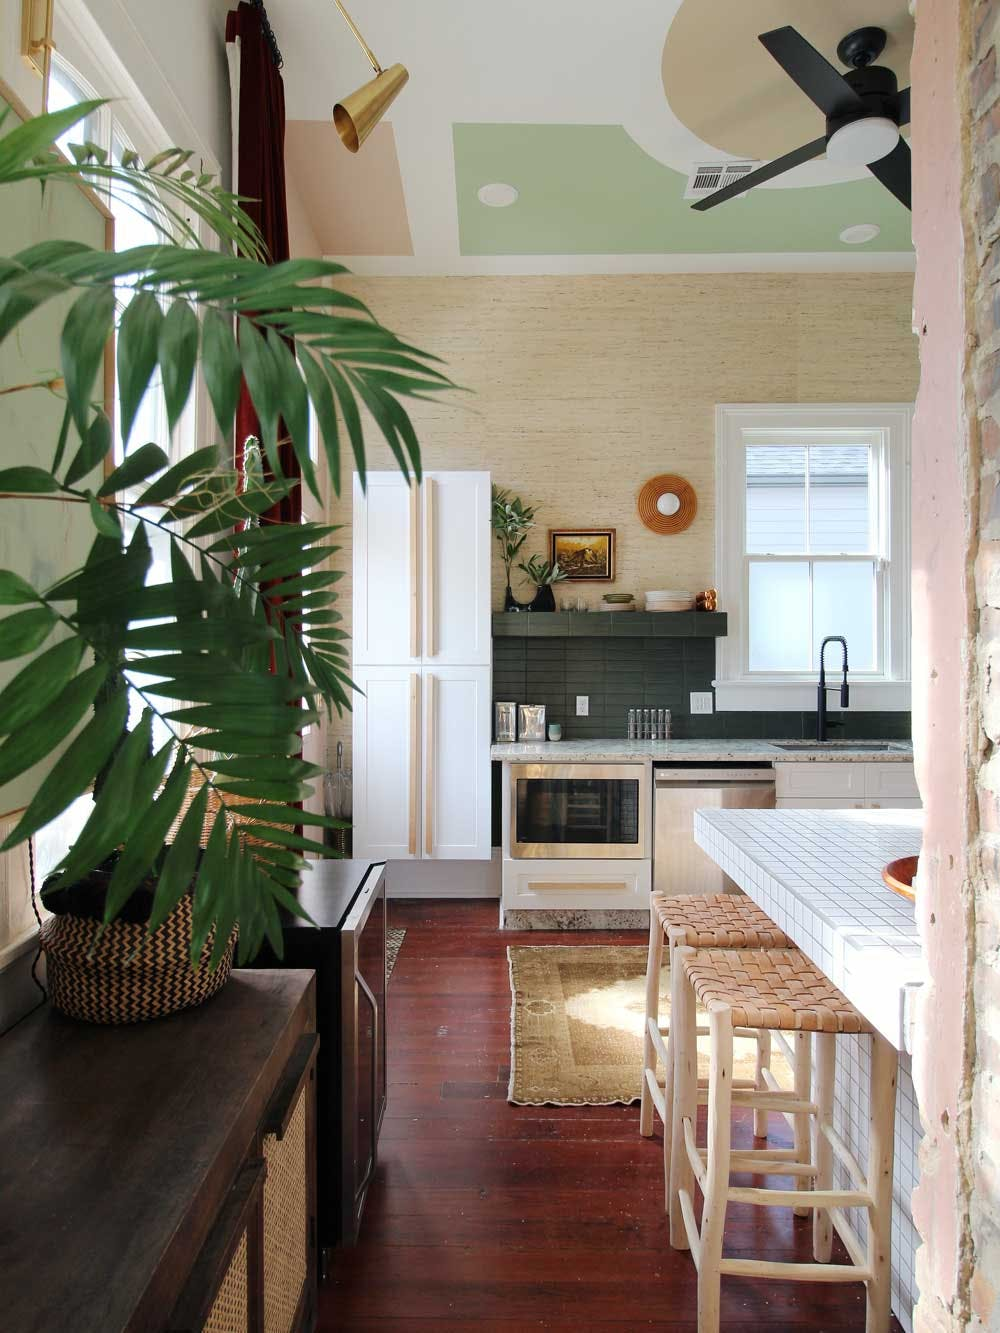 memphis inspired kitchen with grasscloth backspalsh and geometric mural on the ceiling